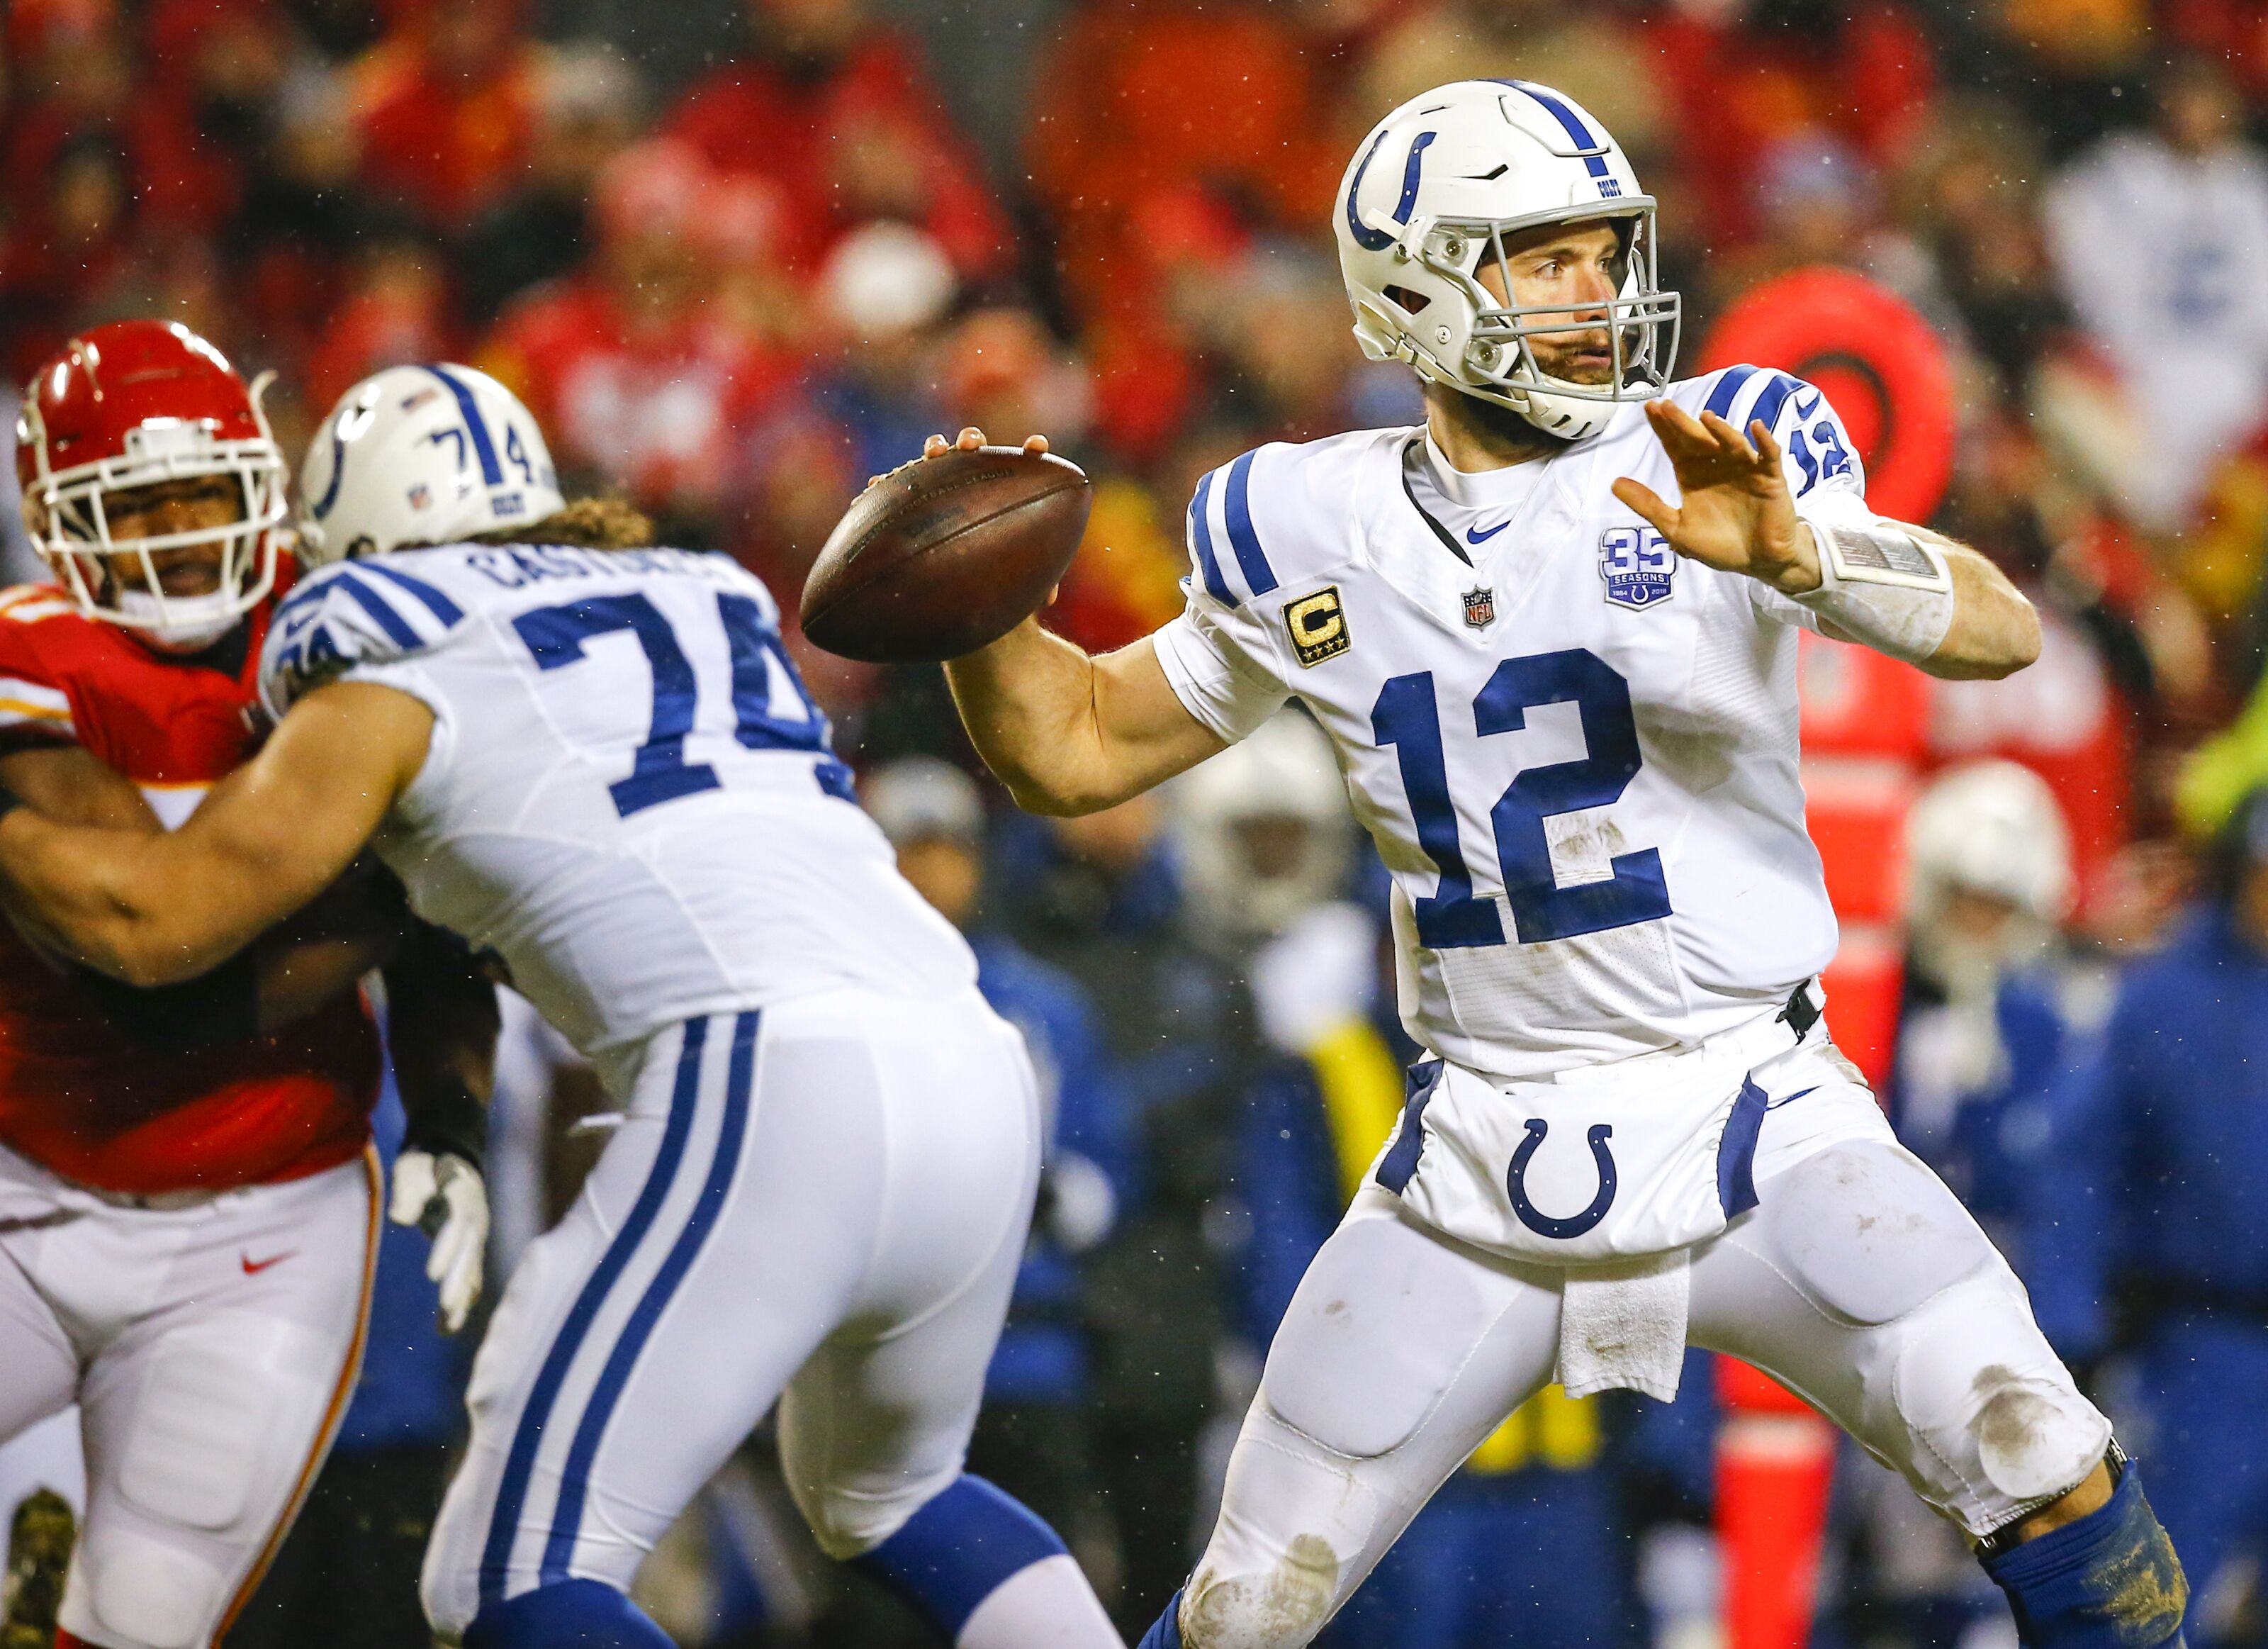 Andrew Luck has quit the Colts, and fans can't believe what is happening